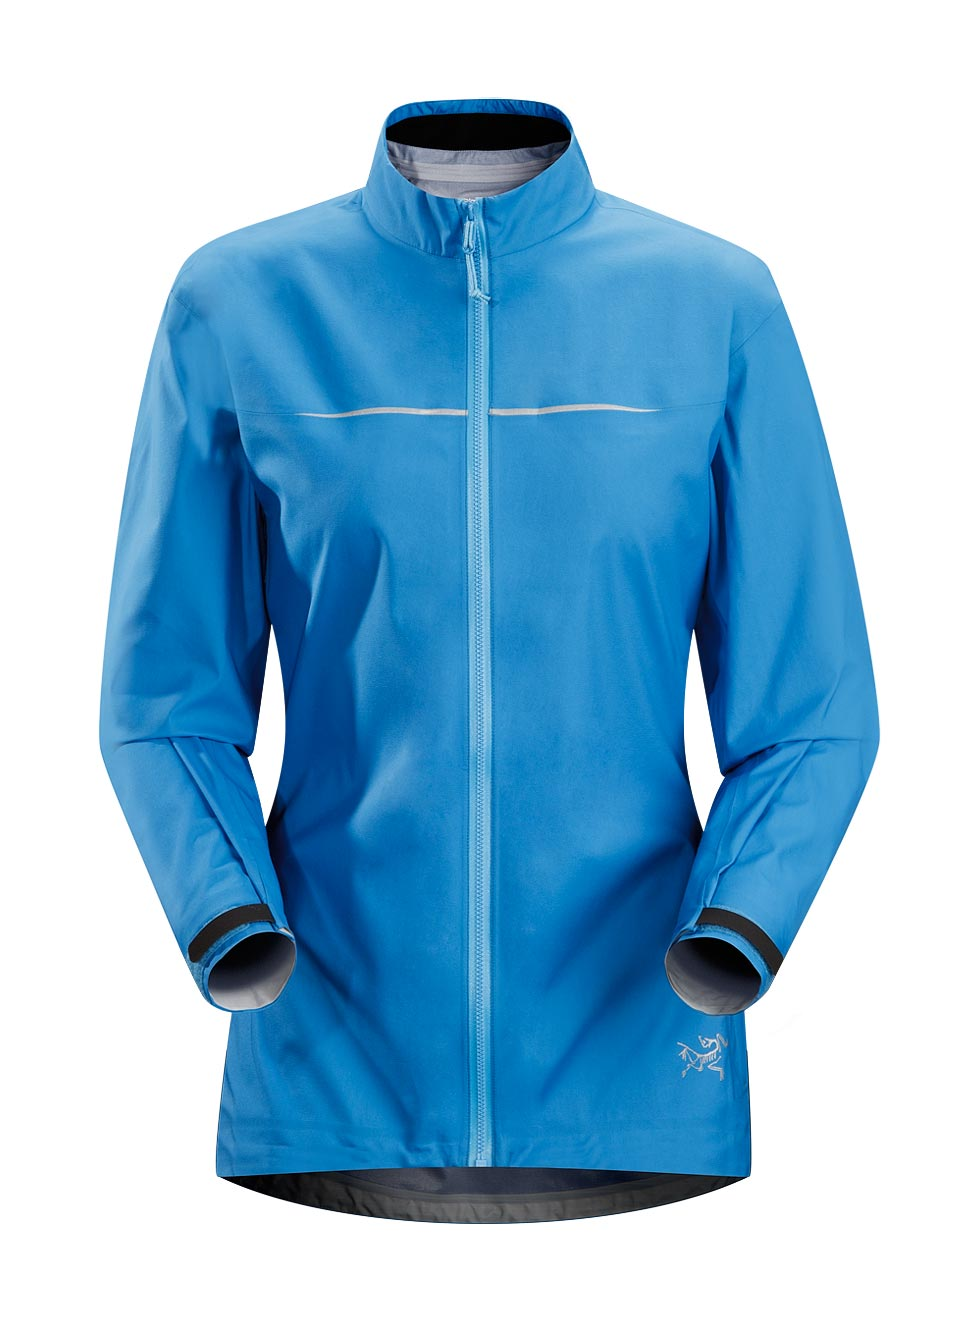 Arcteryx Horizon Sky Visio FL Jacket - New